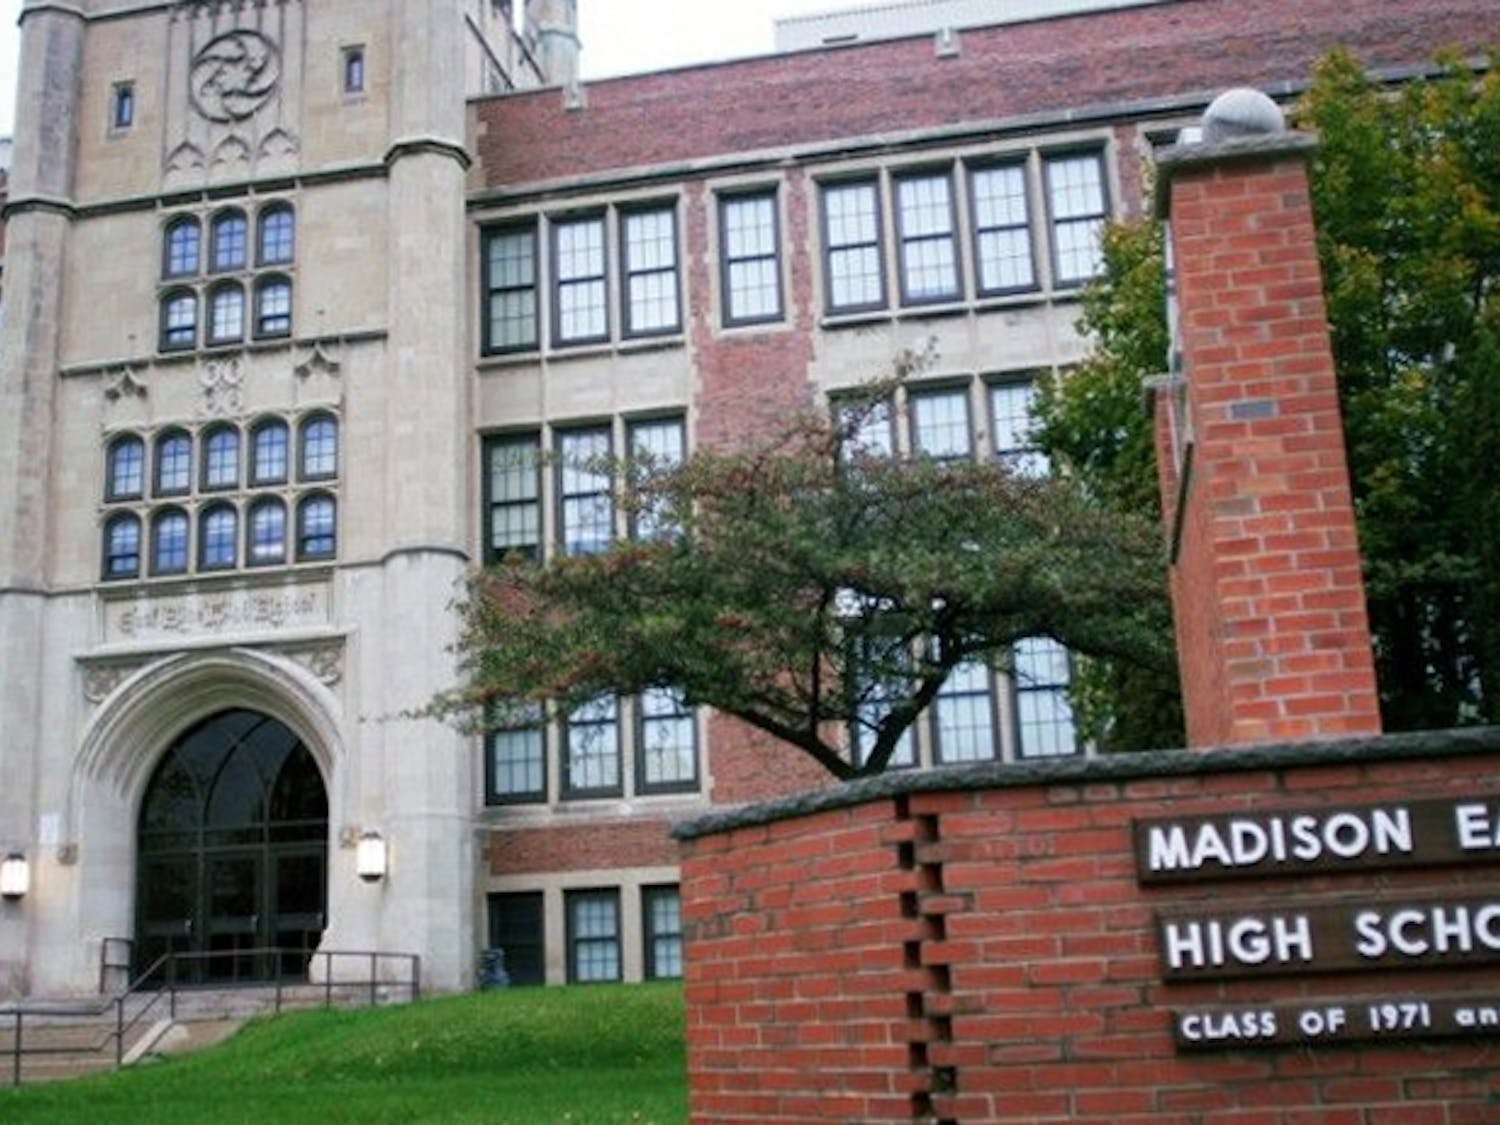 In order to make up time for cancelled class, Madison schools announced they would add two extra instructional days to the calendar and extend school hours.